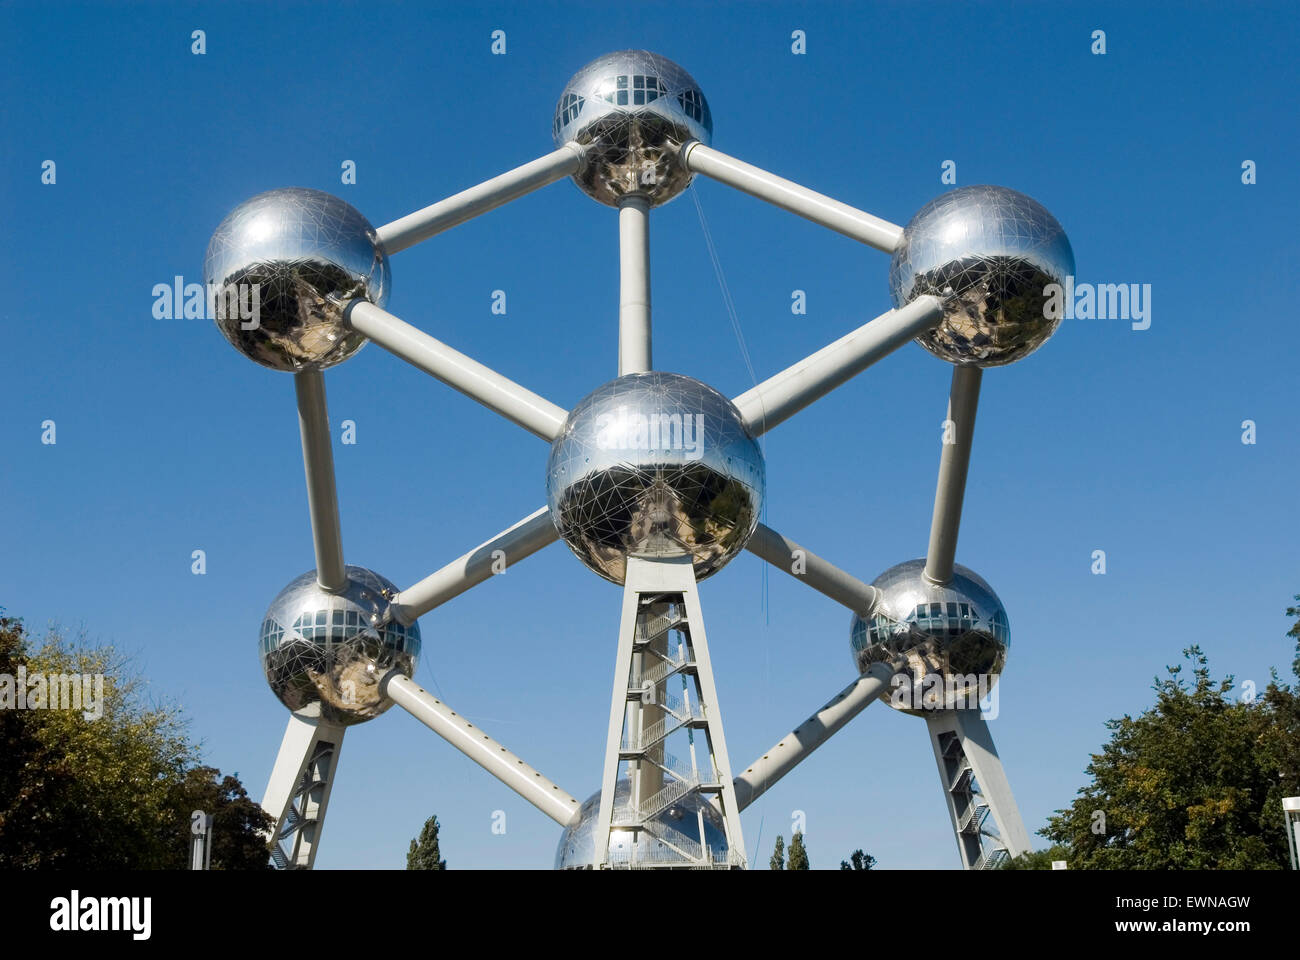 Atomium, Worldfamous Monument of a iron atomic nucleus, in 2018 60th anniversary, Brussels Belgium Europe - Stock Image